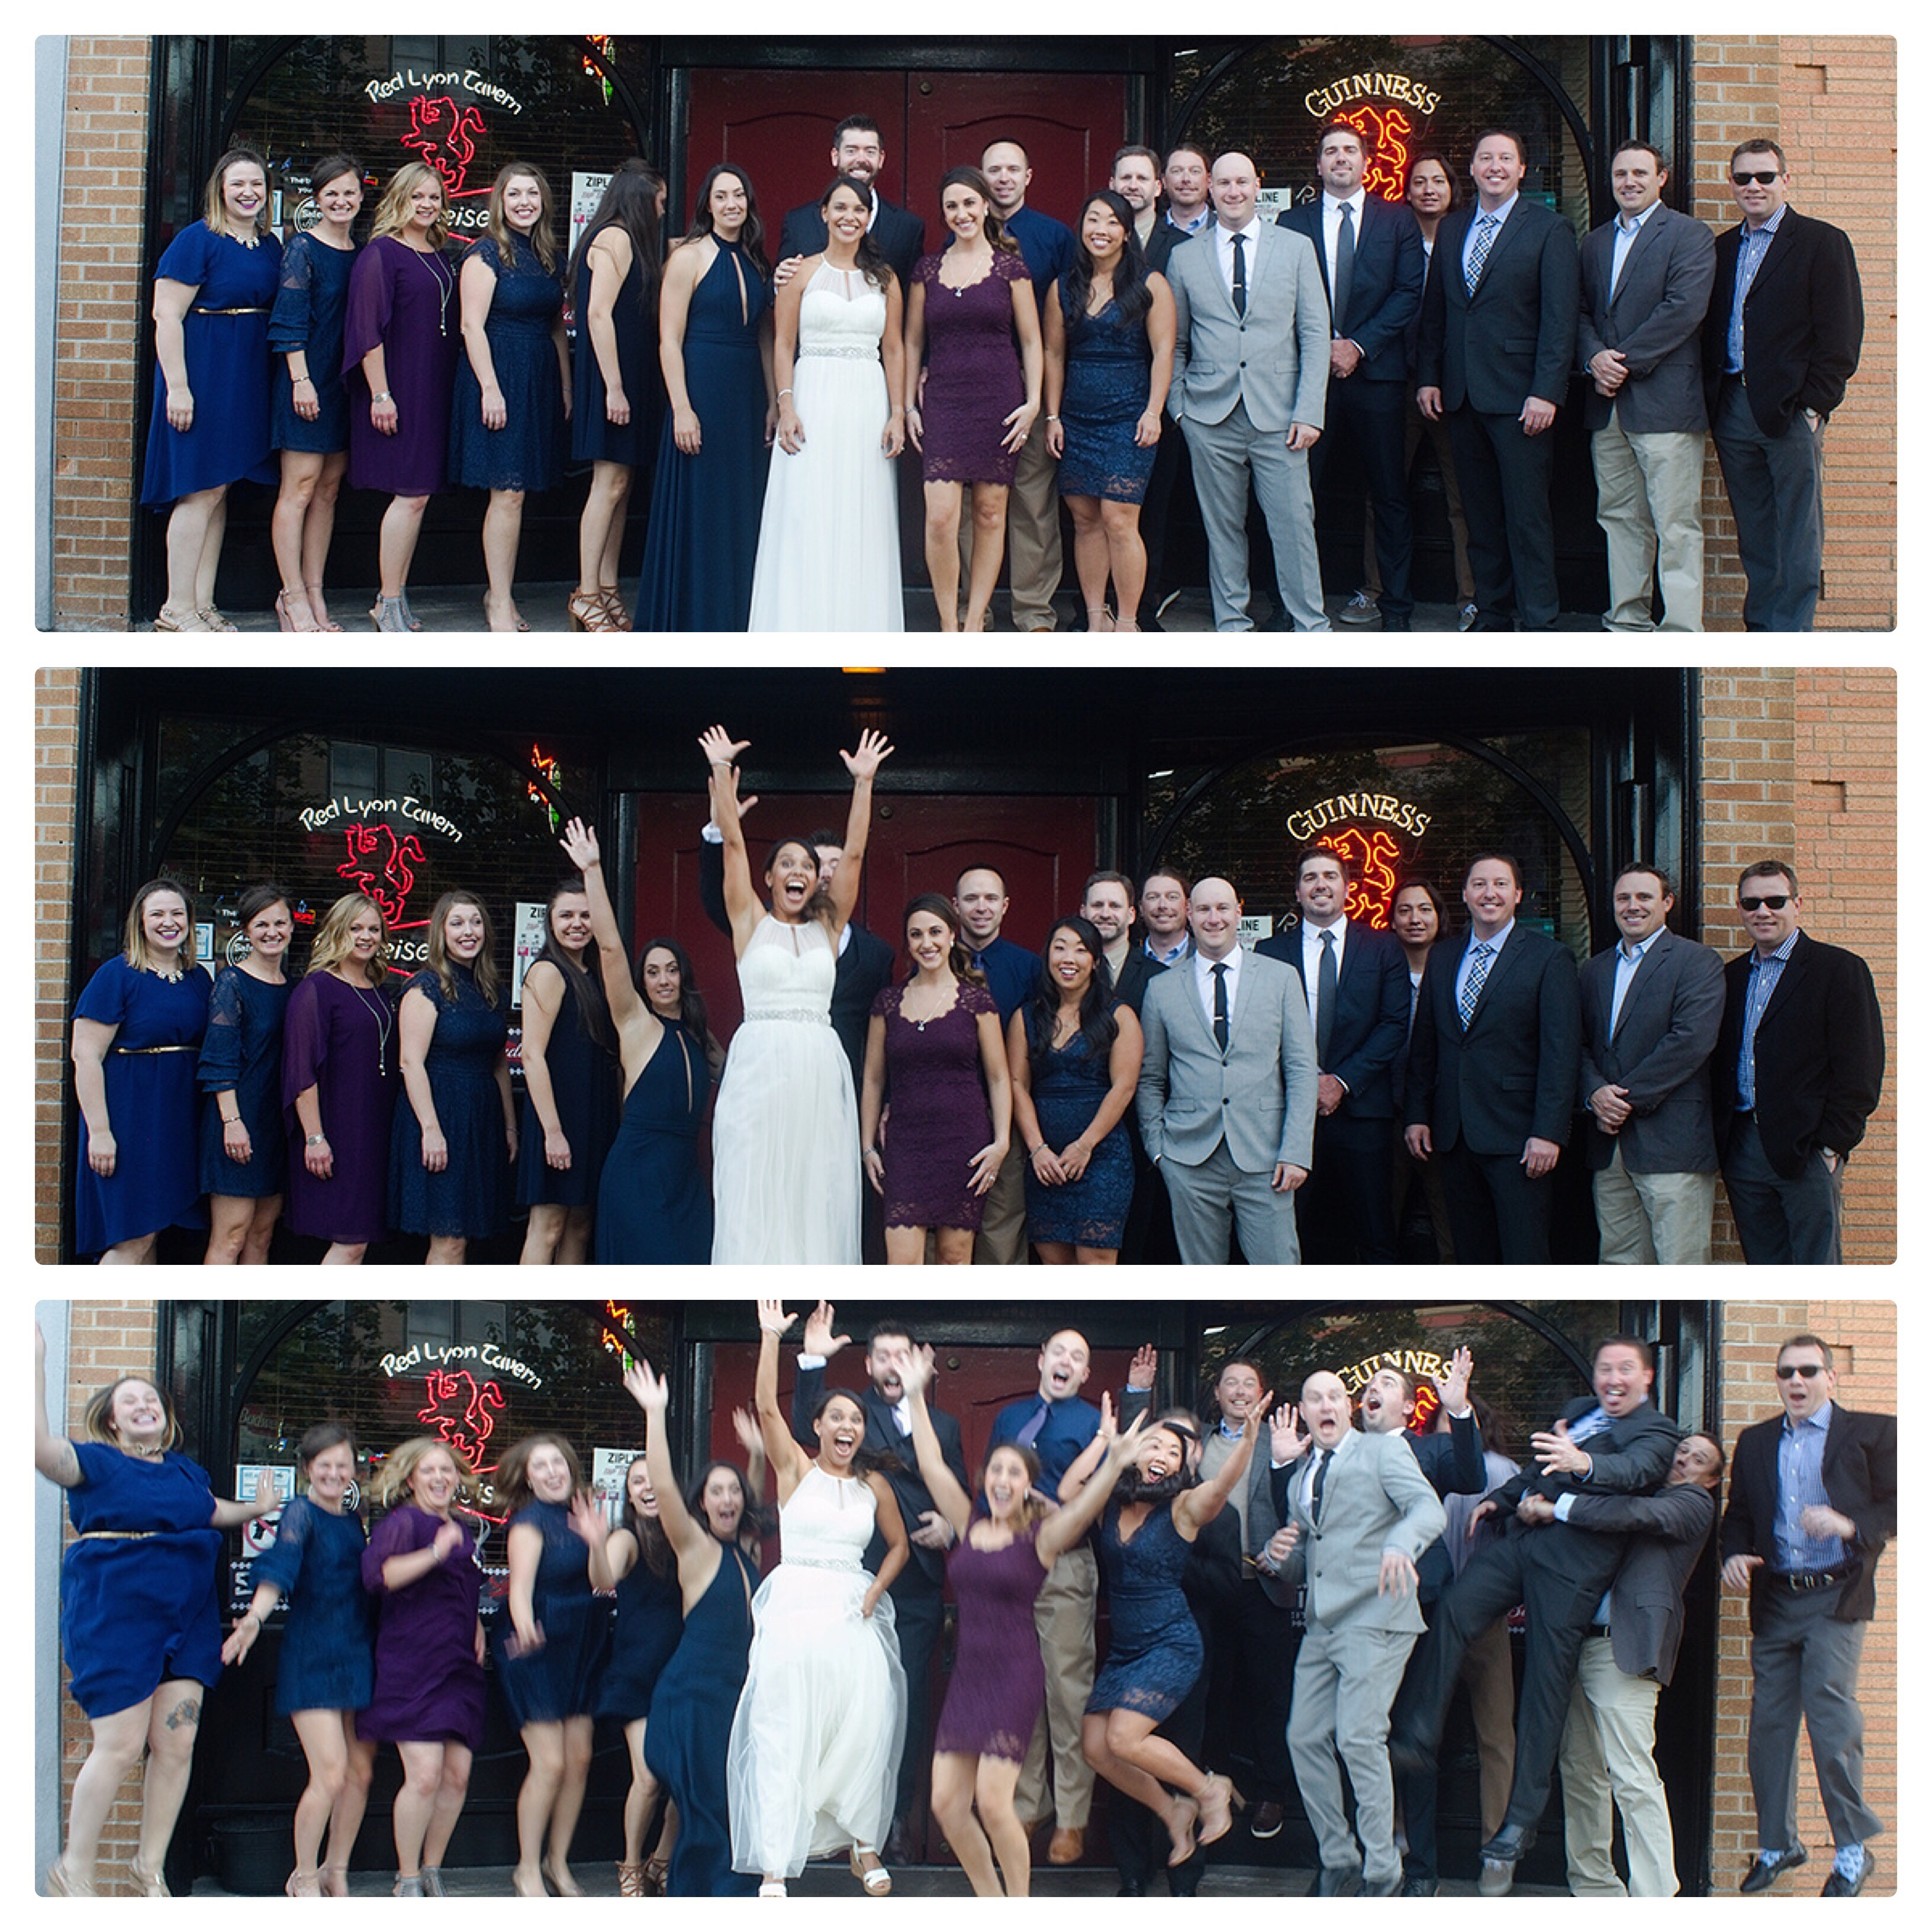 Wedding party jumping for joy at Red Lyon Tavern In Lawrence